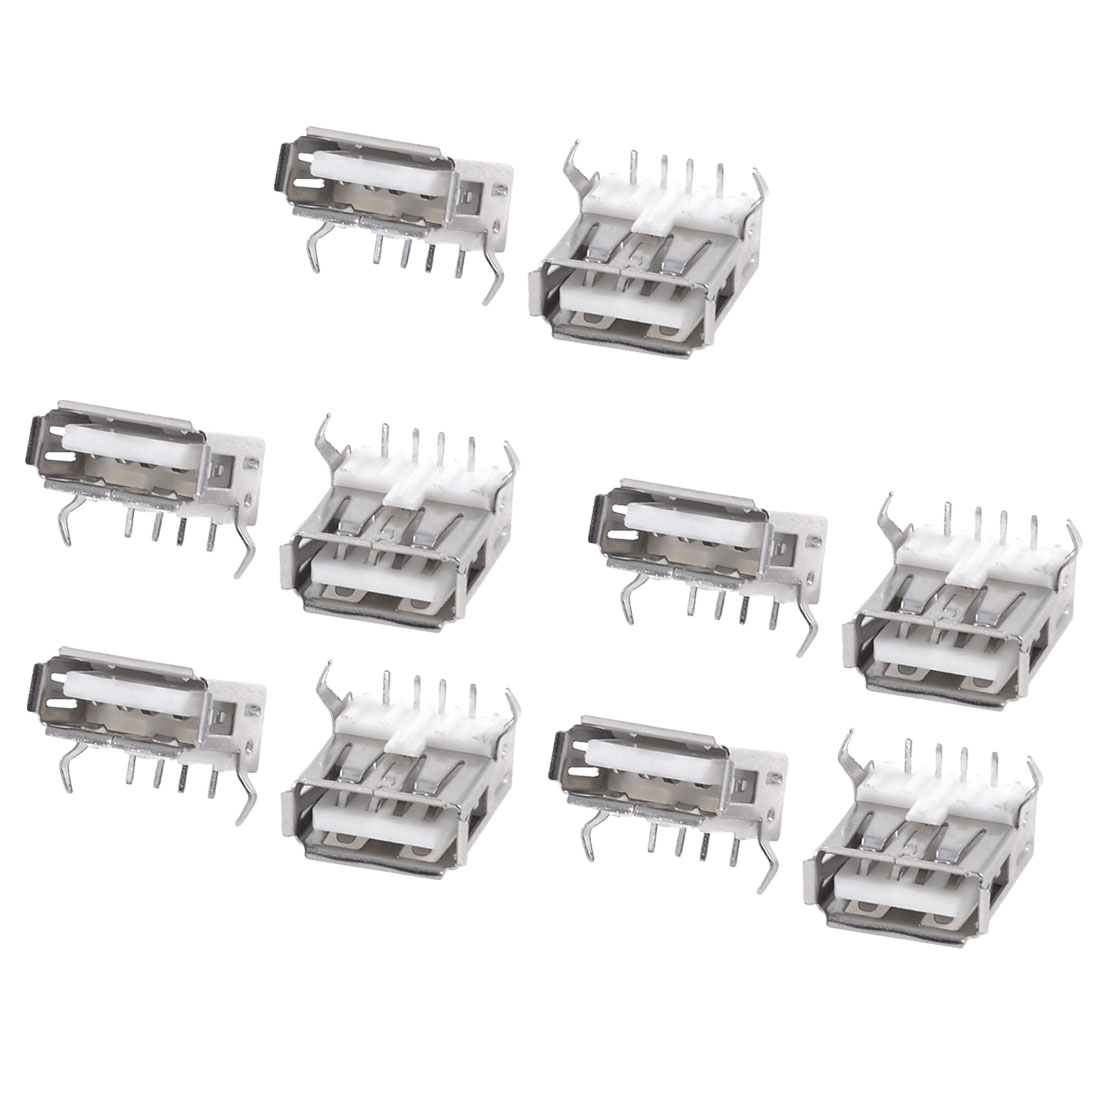 USB Type A Standard Port Female Solder Soldering Jacks Connector 10pcs